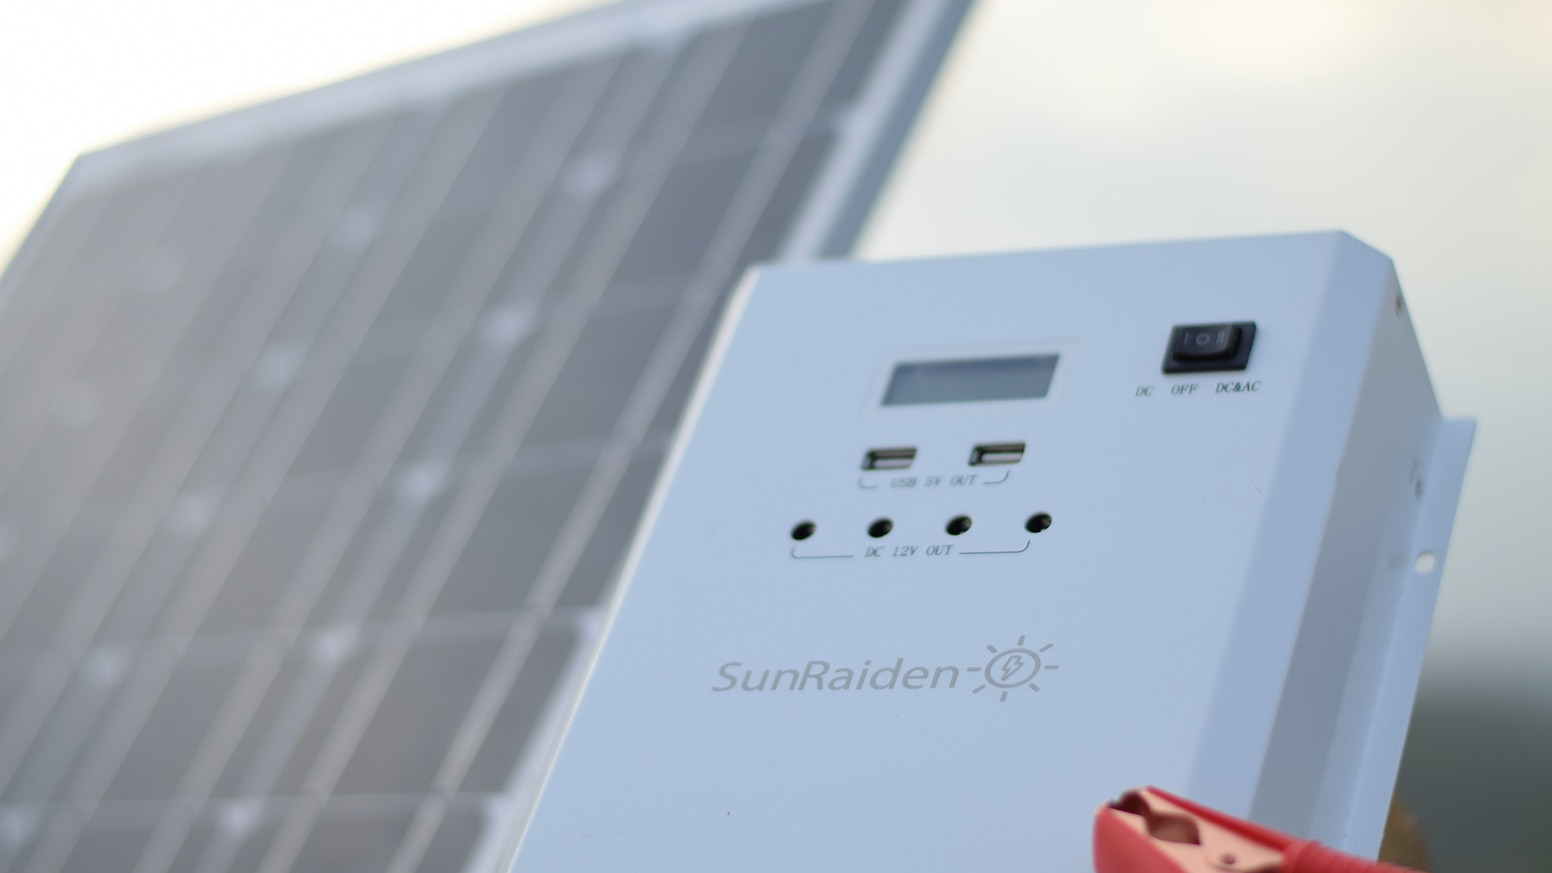 Sunraiden Solar Inverter Charger For Off Grid Power Systems By Plug Wiring Diagram Likewise Led Street Light The Is An Easy And Affordable Electrical